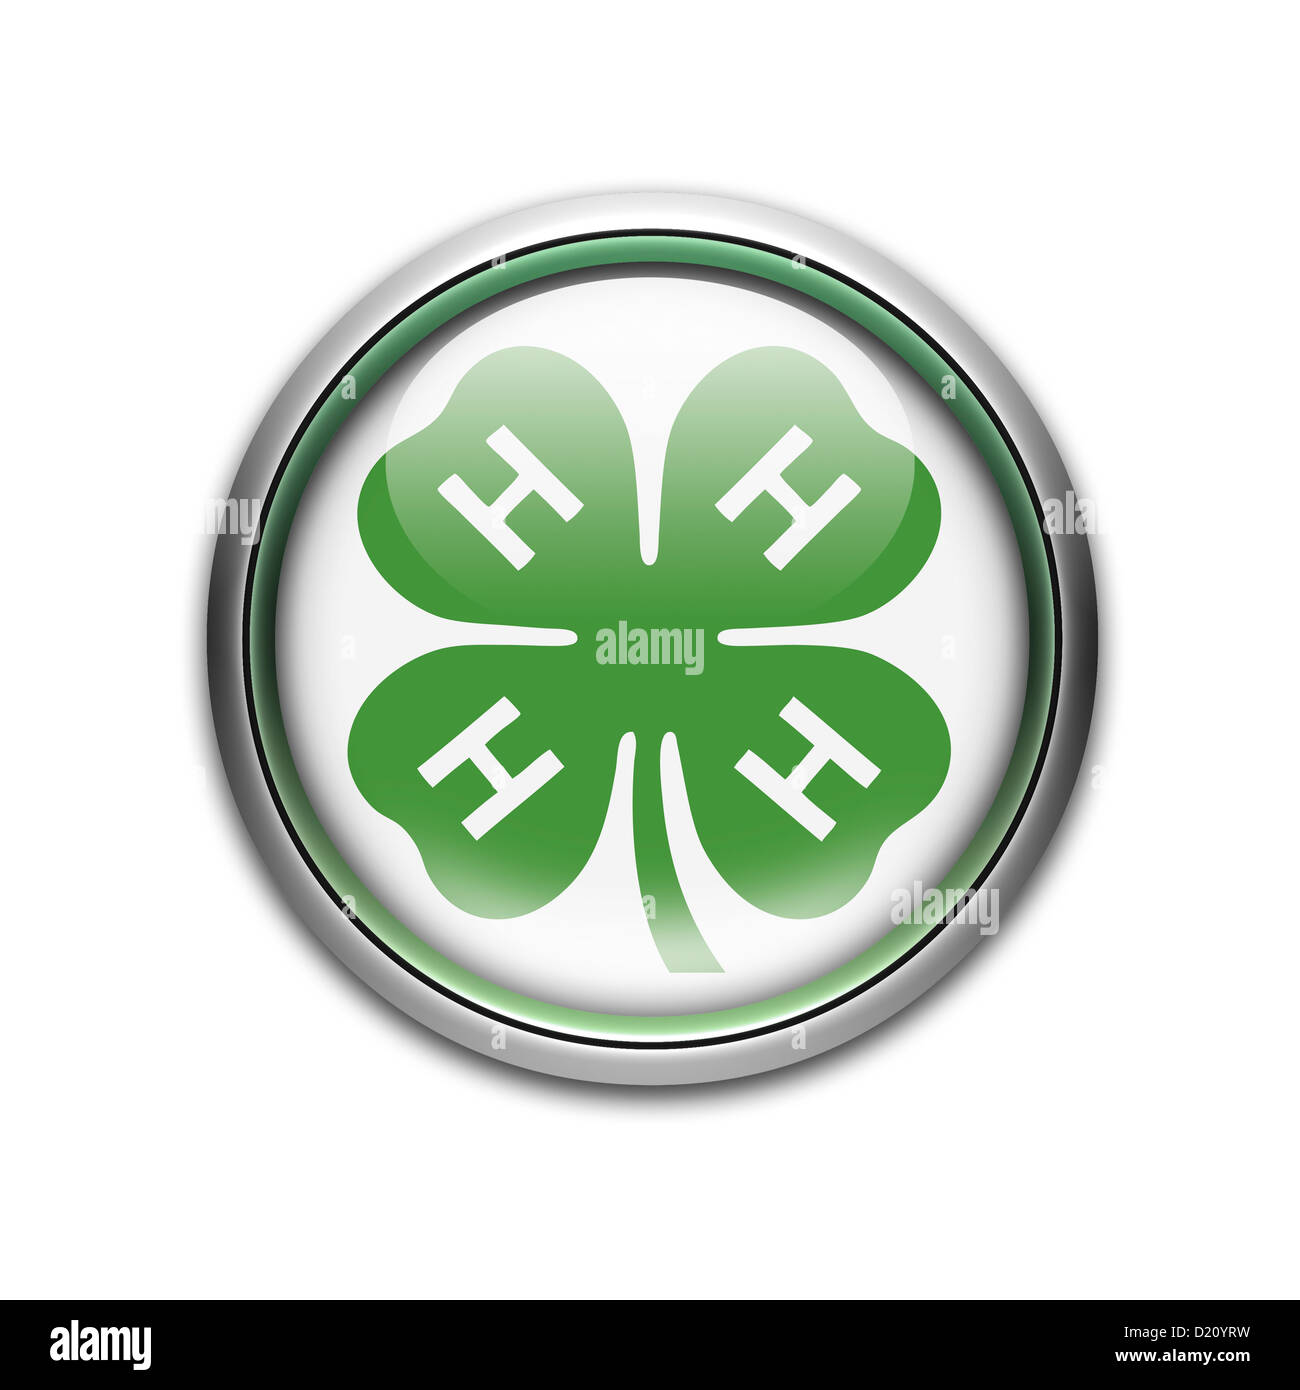 4 H Club Logo Symbol Icon Flag Stock Photo, Royalty Free Image ...